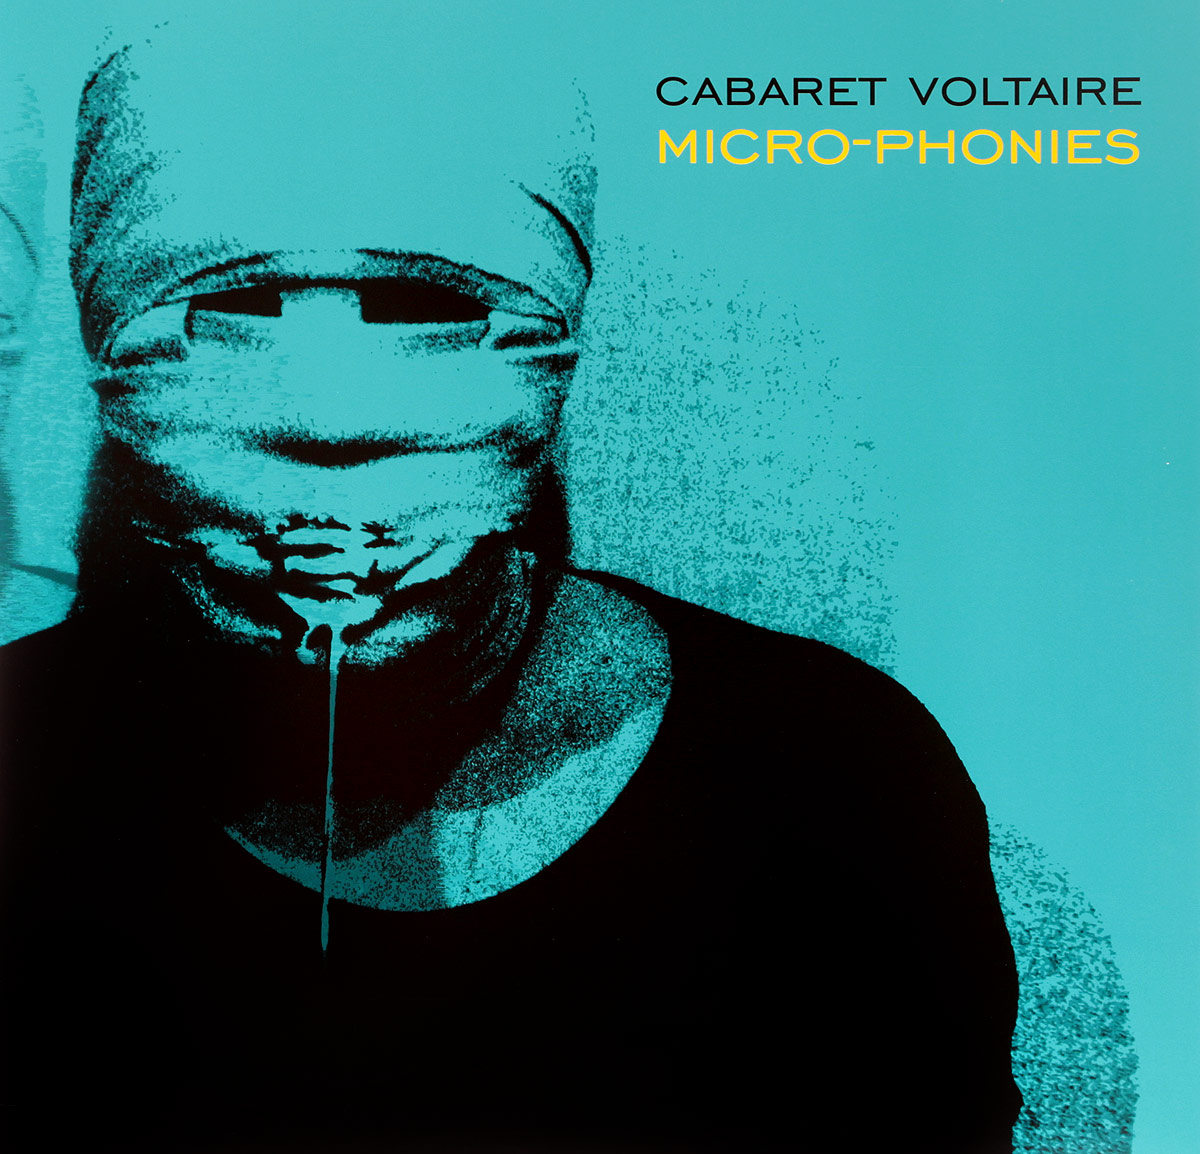 Cabaret Voltaire Cabaret Voltaire. Micro-Phonies (2 LP) cabaret voltaire cabaret voltaire the covenant the sword and the arm of the lord lp